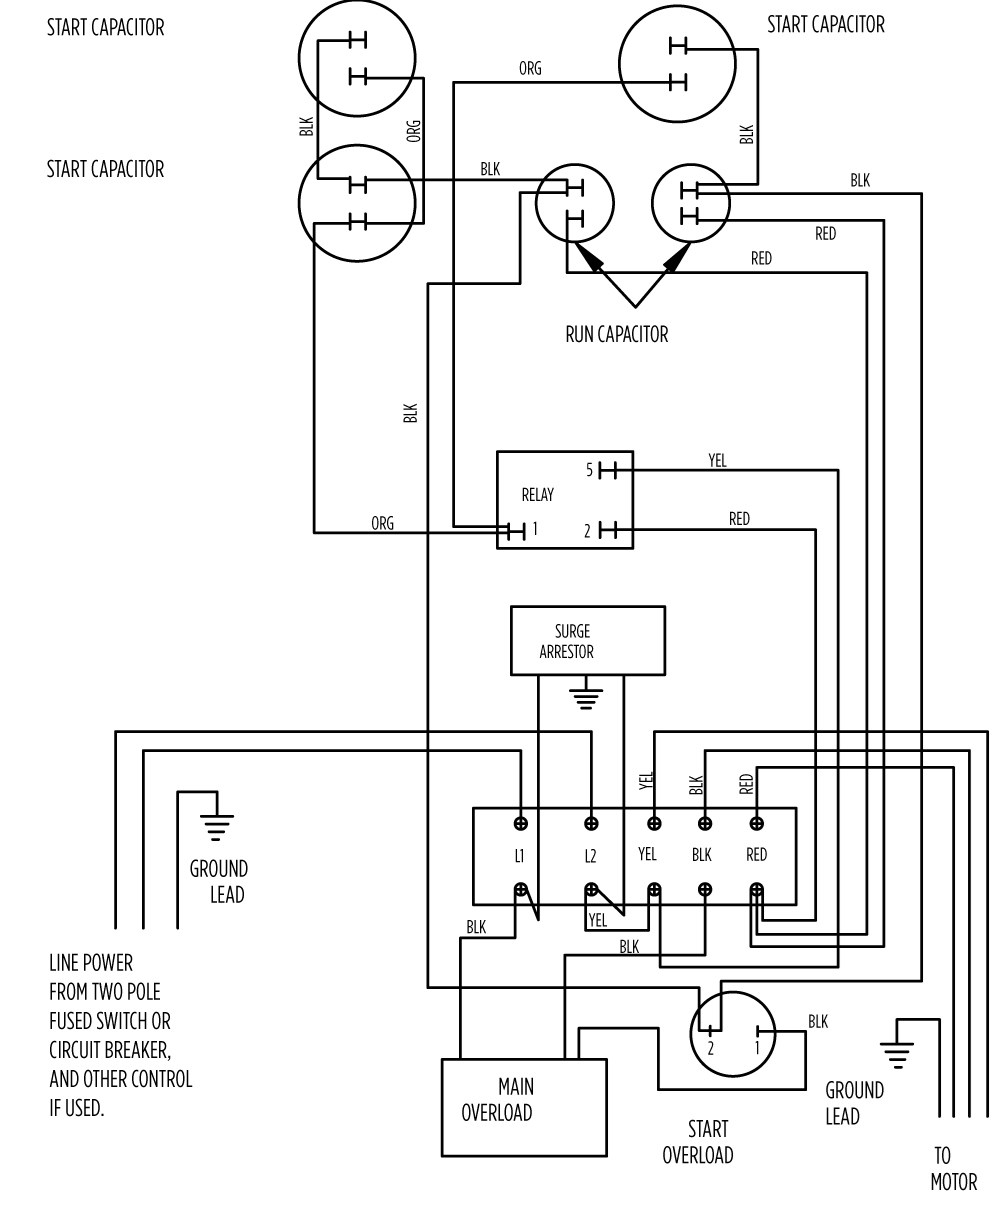 motor wiring diagram 3 phase 10 wire schematics wiring diagrams rh wine174 com motor wiring diagram 9 leads motor wiring diagram 3 phase